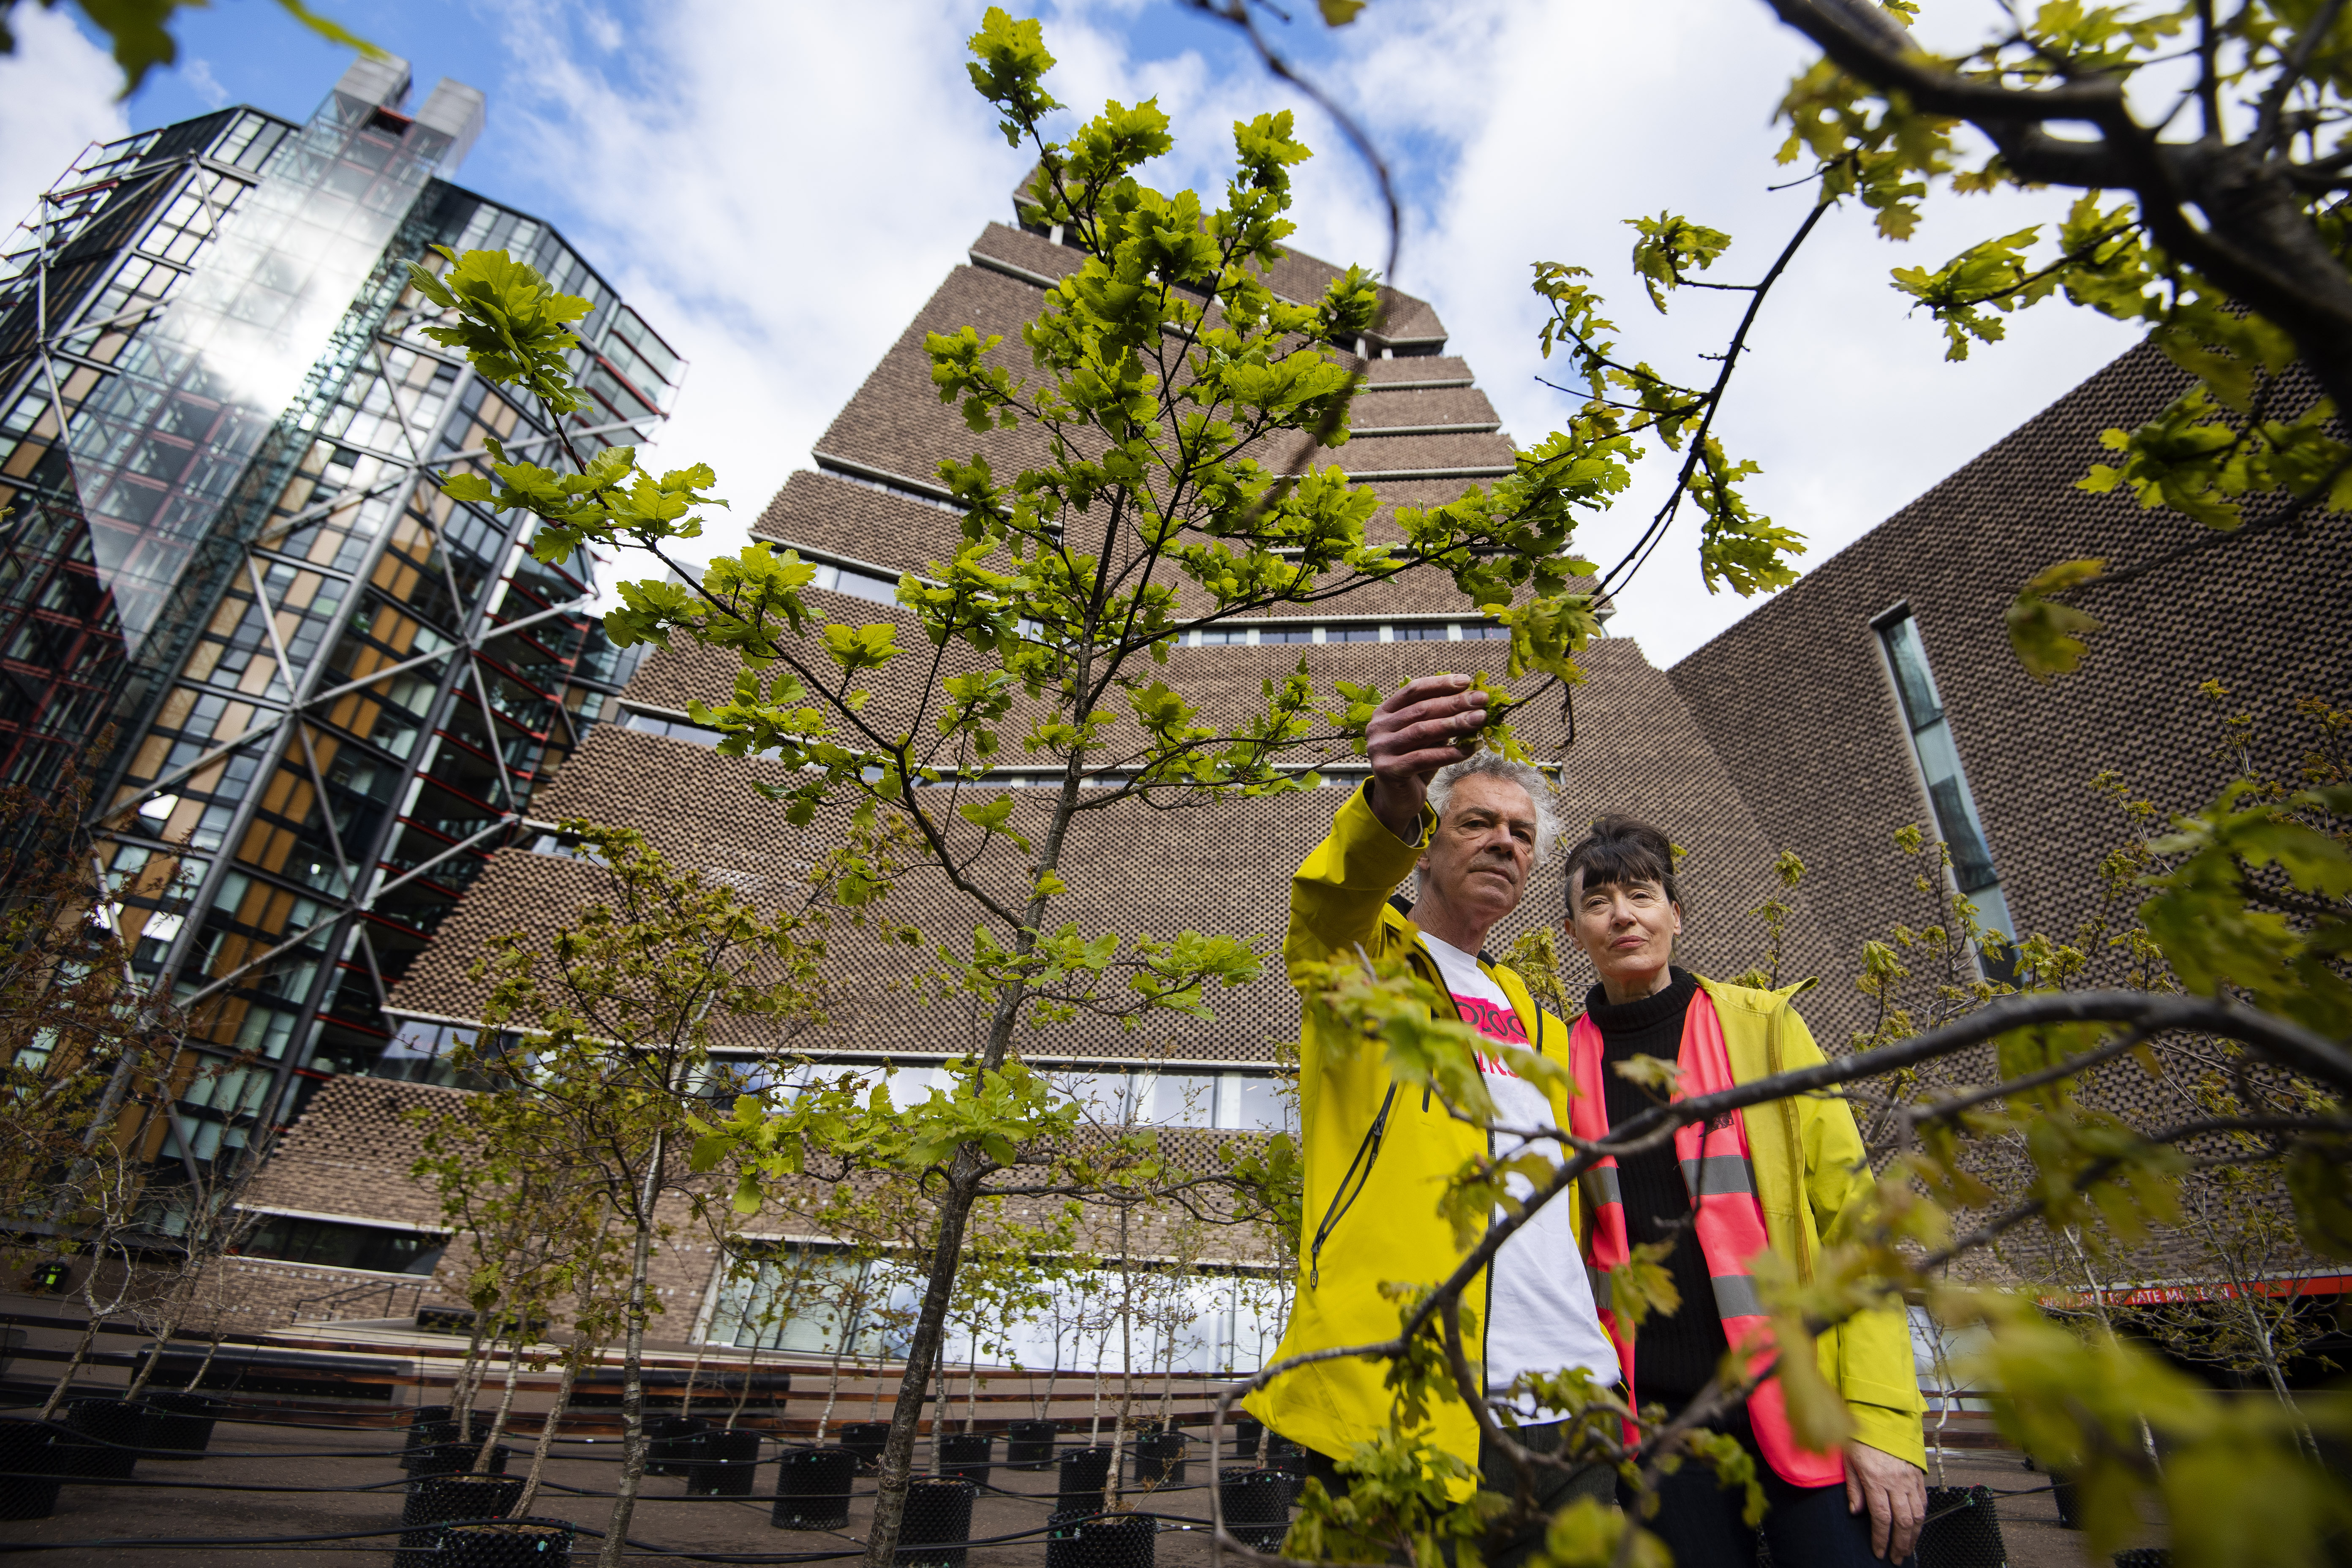 <p>Artists Heather Ackroyd and Dan Harvey stand within 100 oak saplings which form part of a living art installation entitled Beuys' Acorns by the UK-based artist duo, outside the Tate Modern in London. Picture date: Tuesday May 4, 2021.</p>